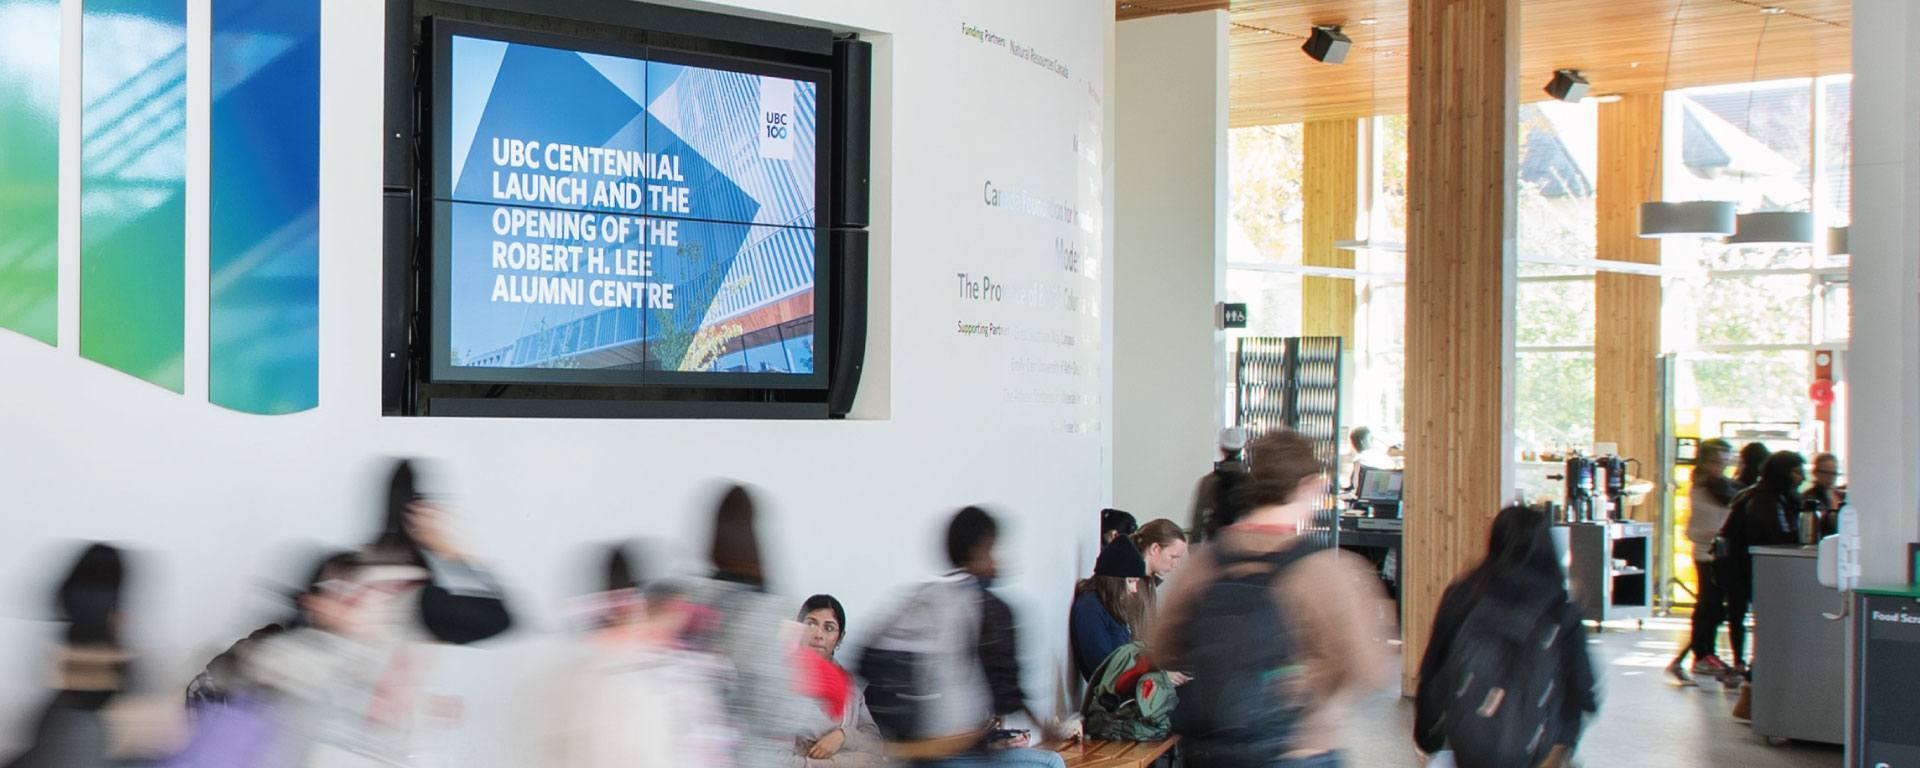 University Digital Signage Use Case UBC